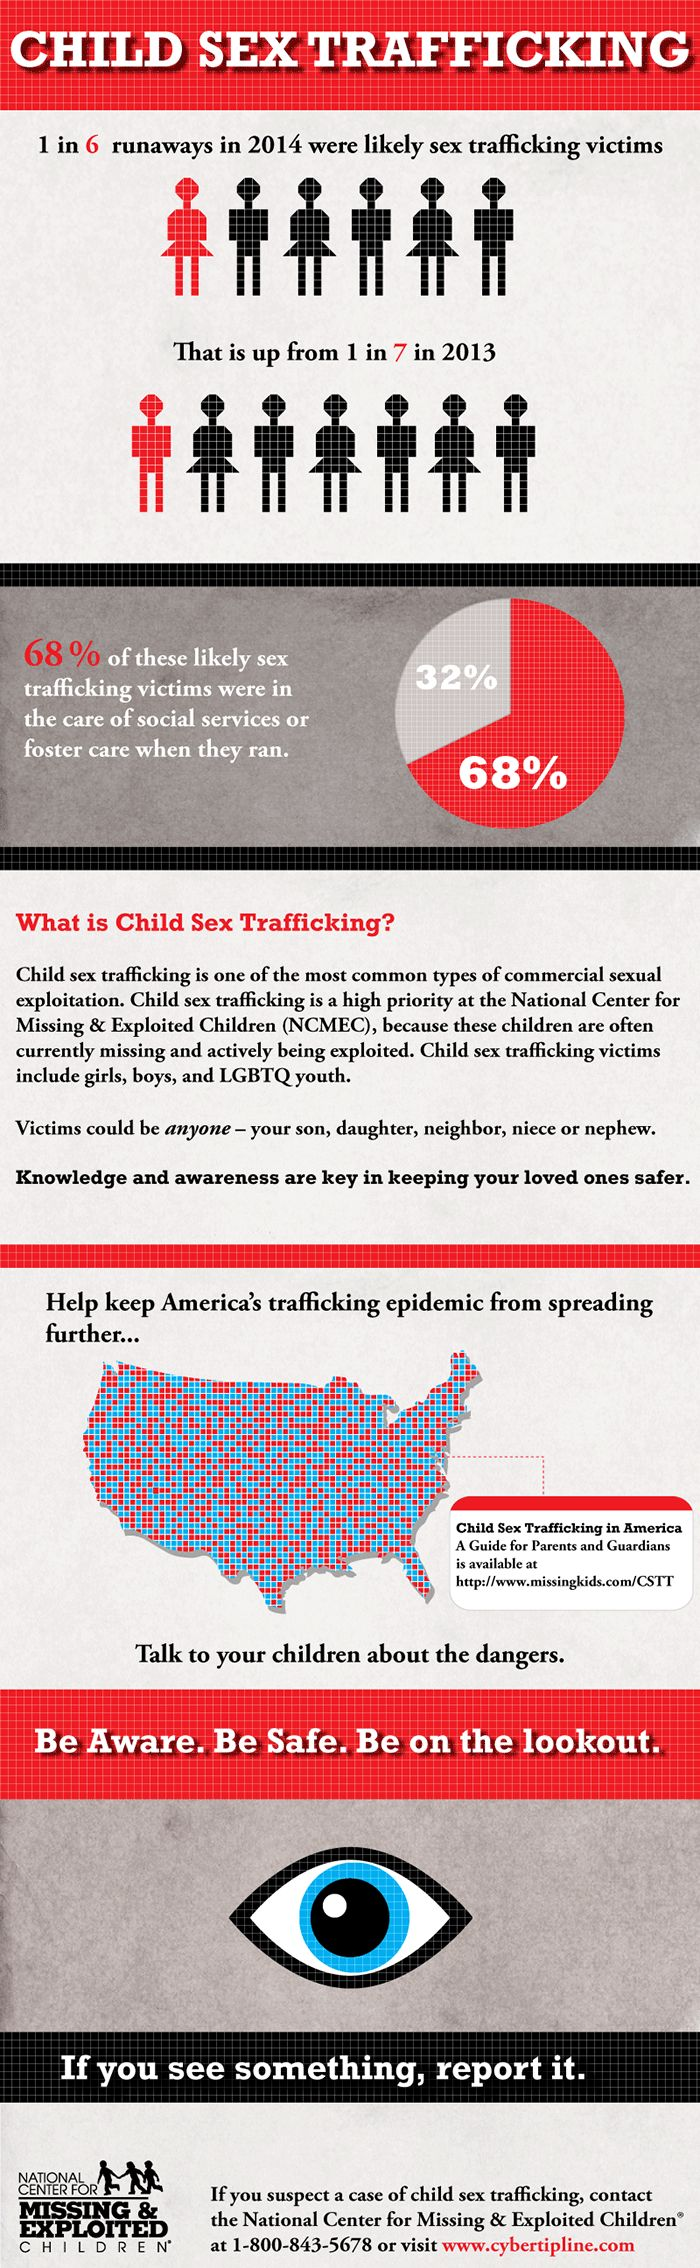 Sex trafficking: The new American slavery